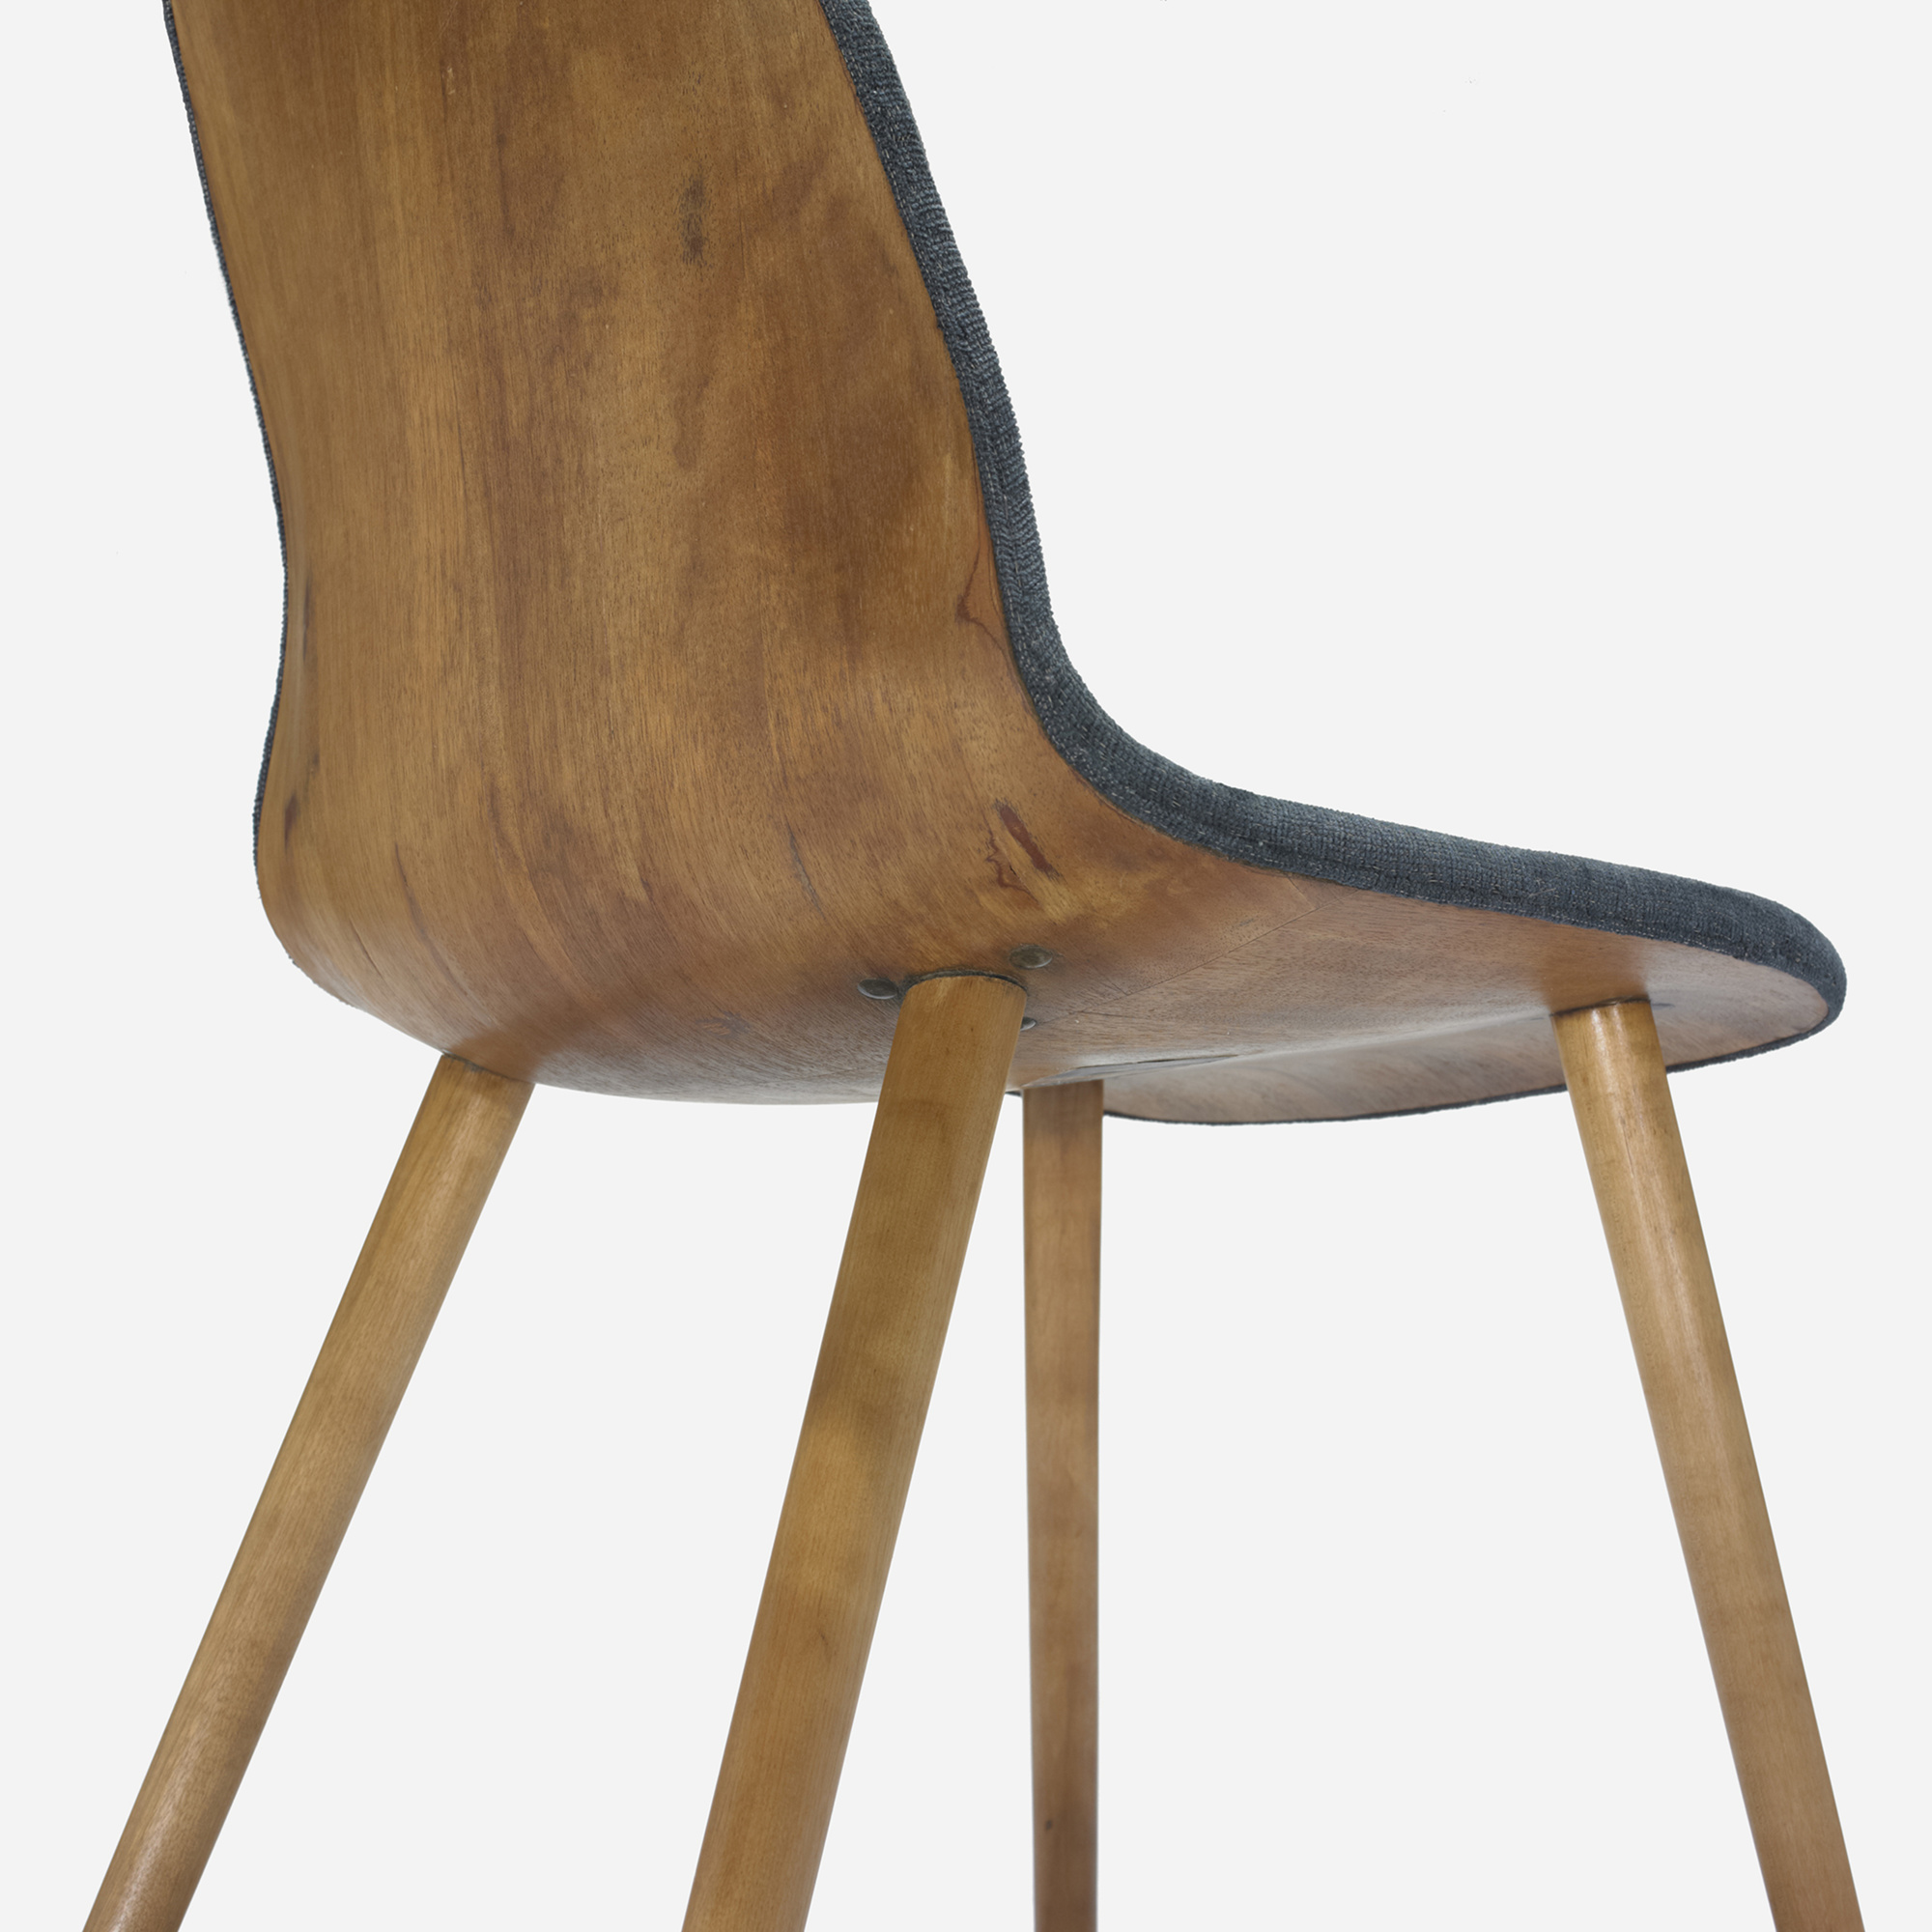 123: Charles Eames and Eero Saarinen / chair from the Museum of ...